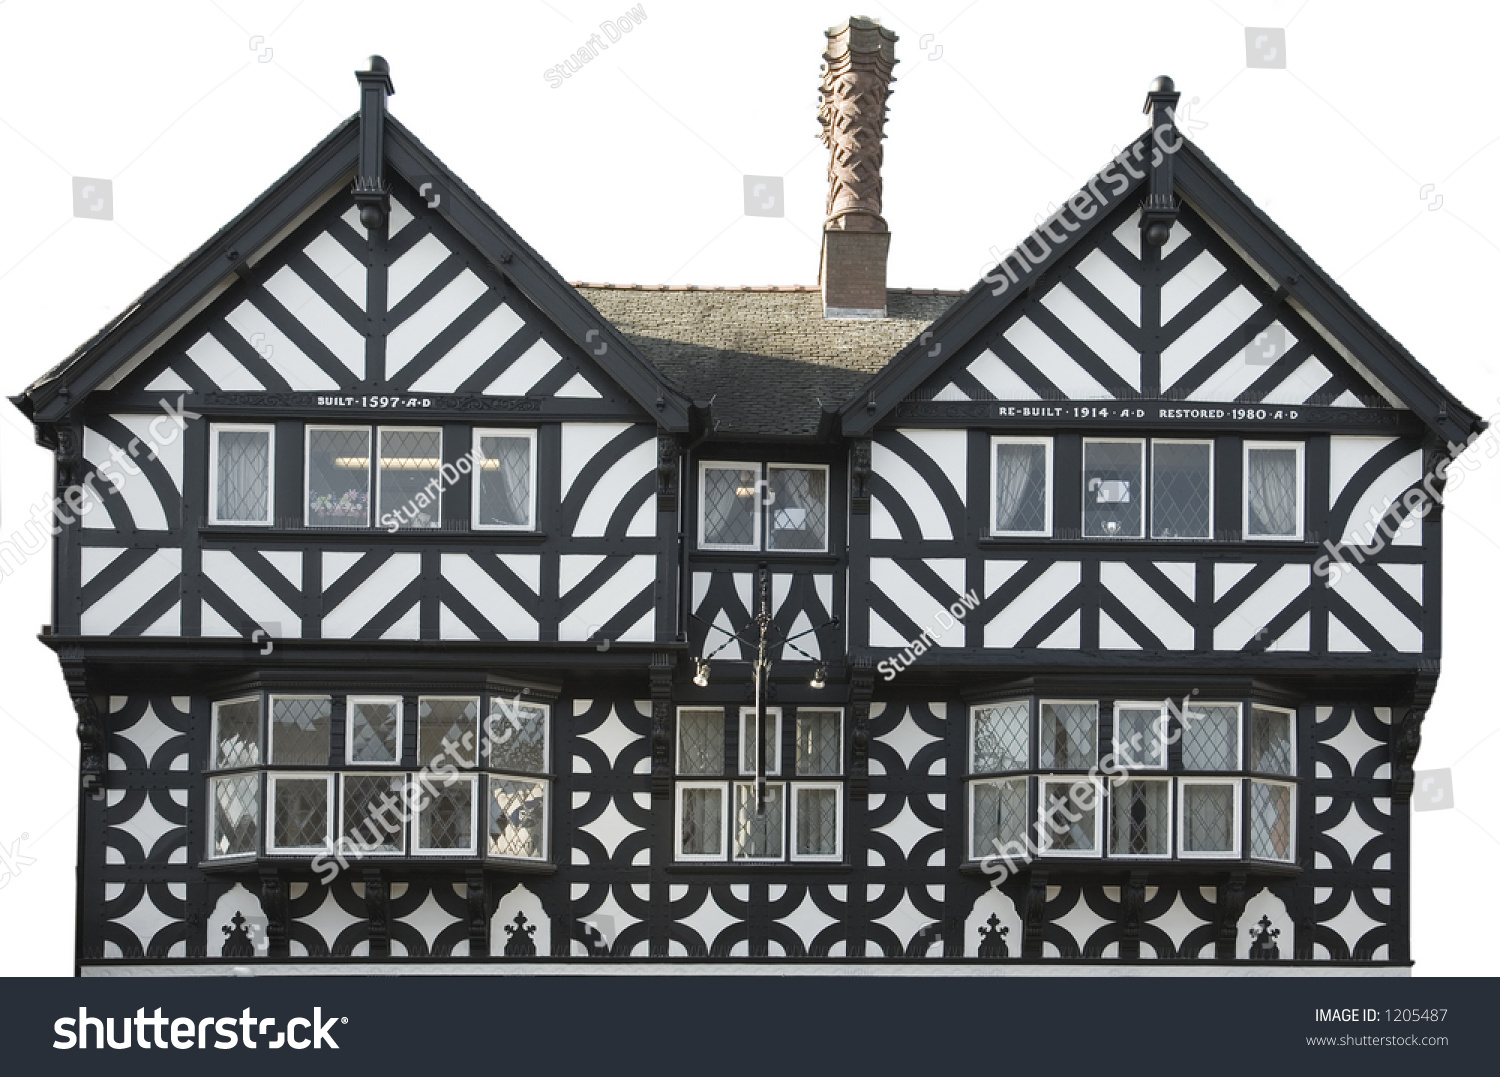 tudor style house front stock photo 1205487 shutterstock